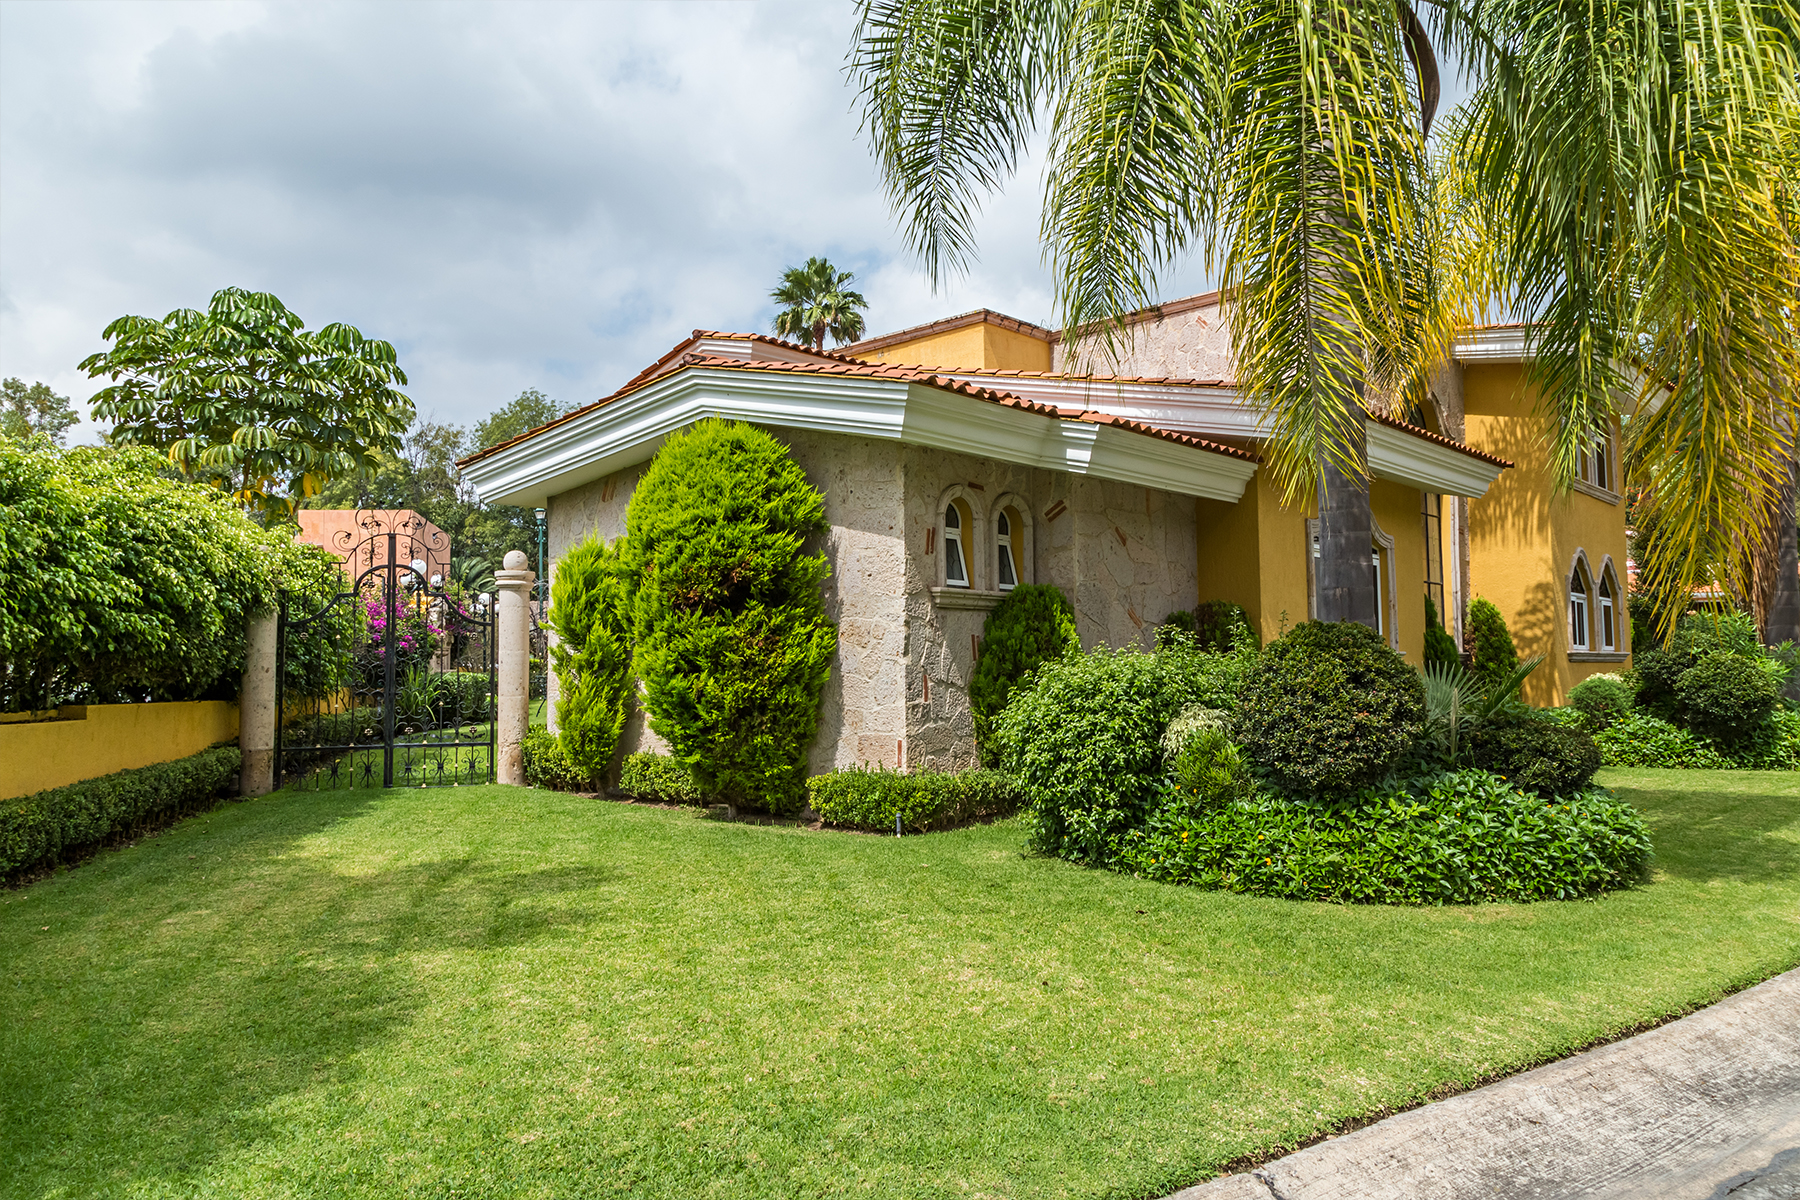 Single Family Home for Sale at Casa Jacarandas, Santa Anita Club de Golf Guadalajara, Jalisco 45645 Mexico